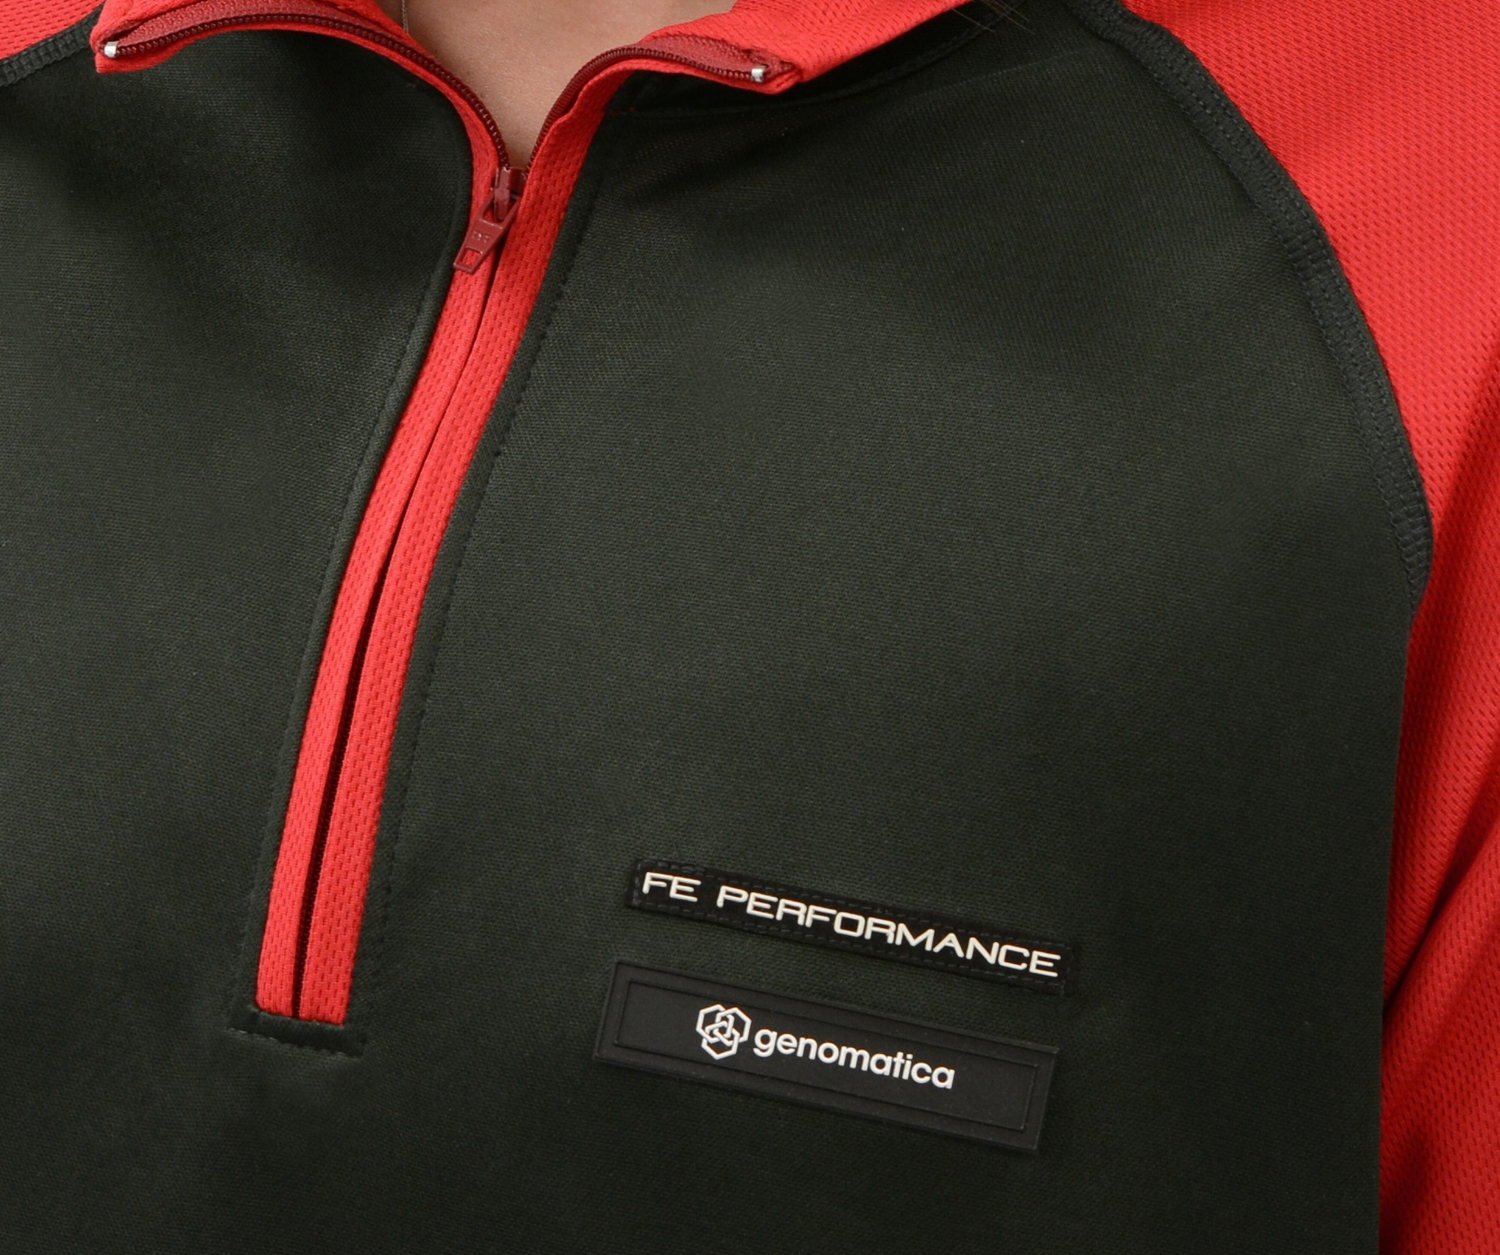 High-performance clothing using sustainable polymers